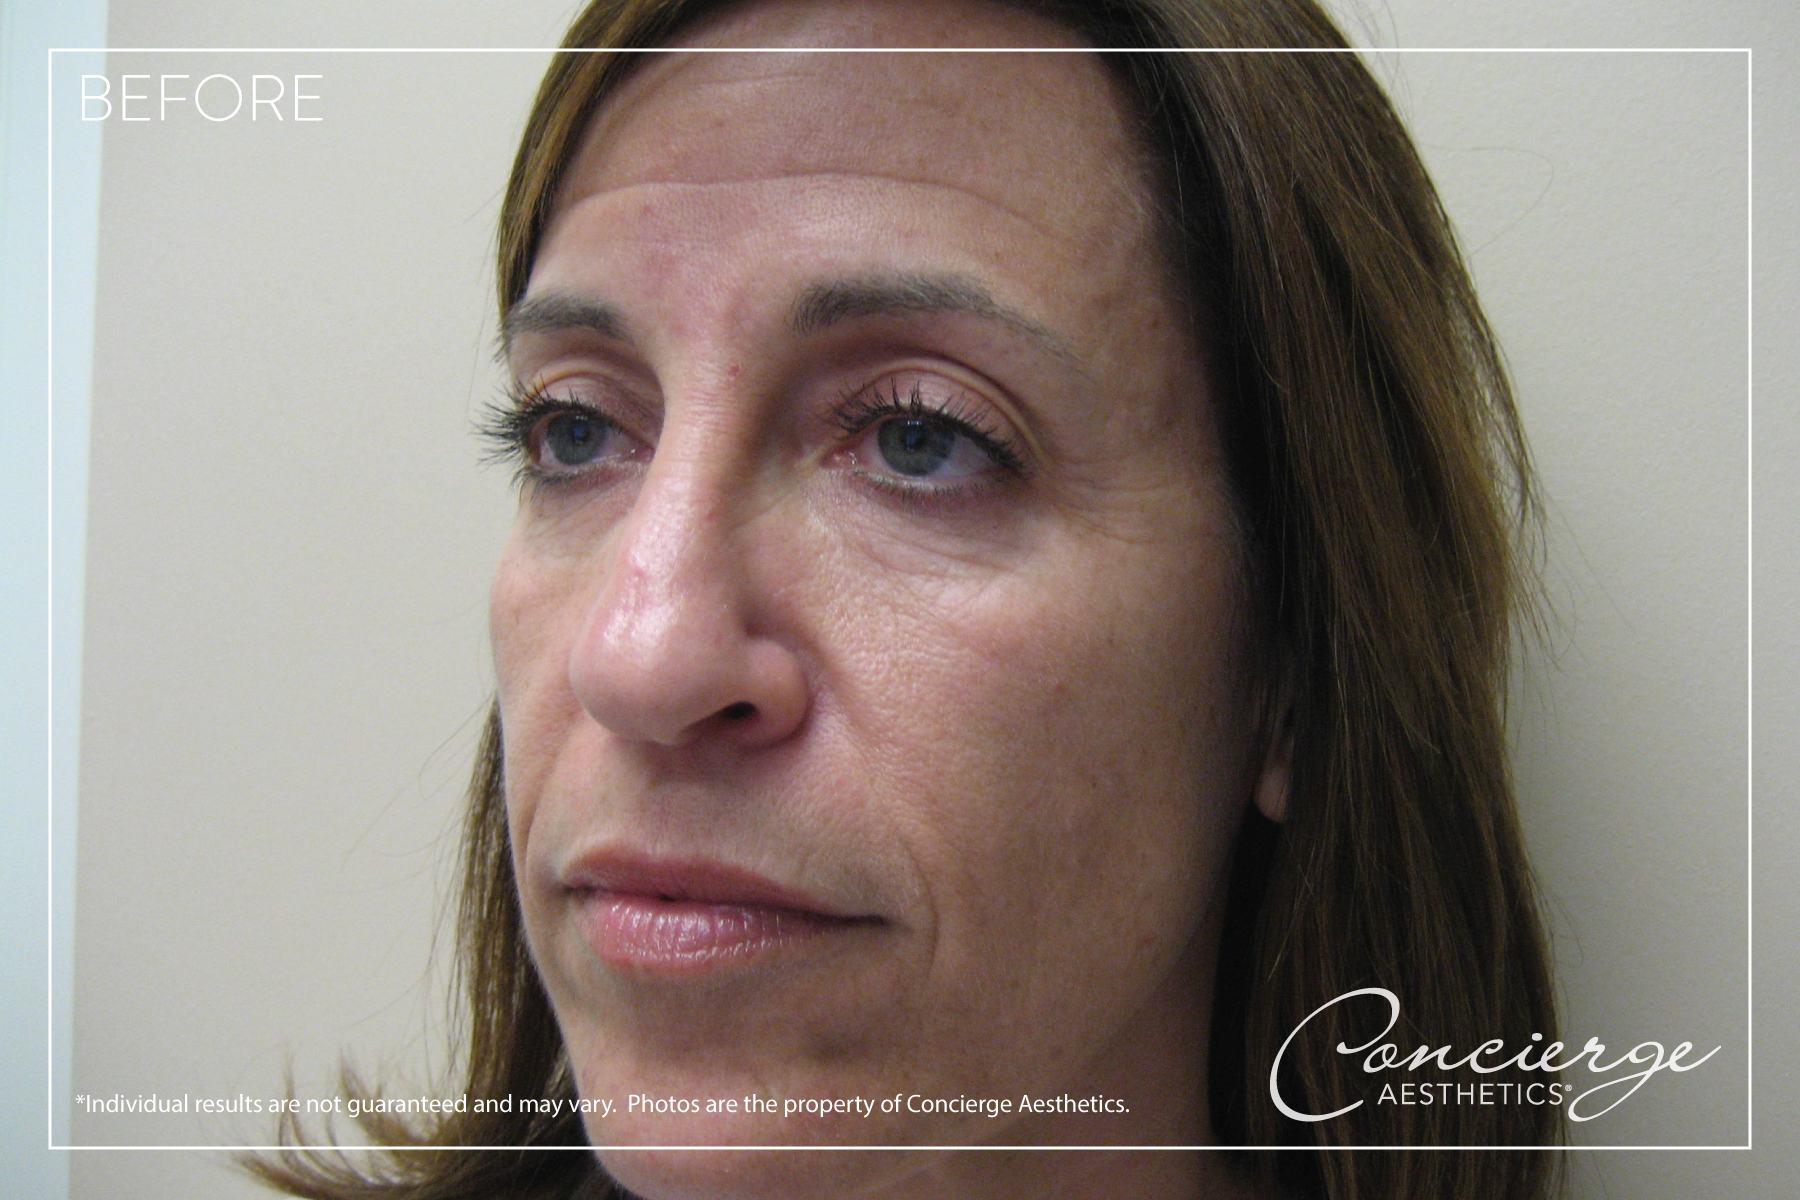 Mommy Makeover - Before and After Photos - Concierge Aesthetics